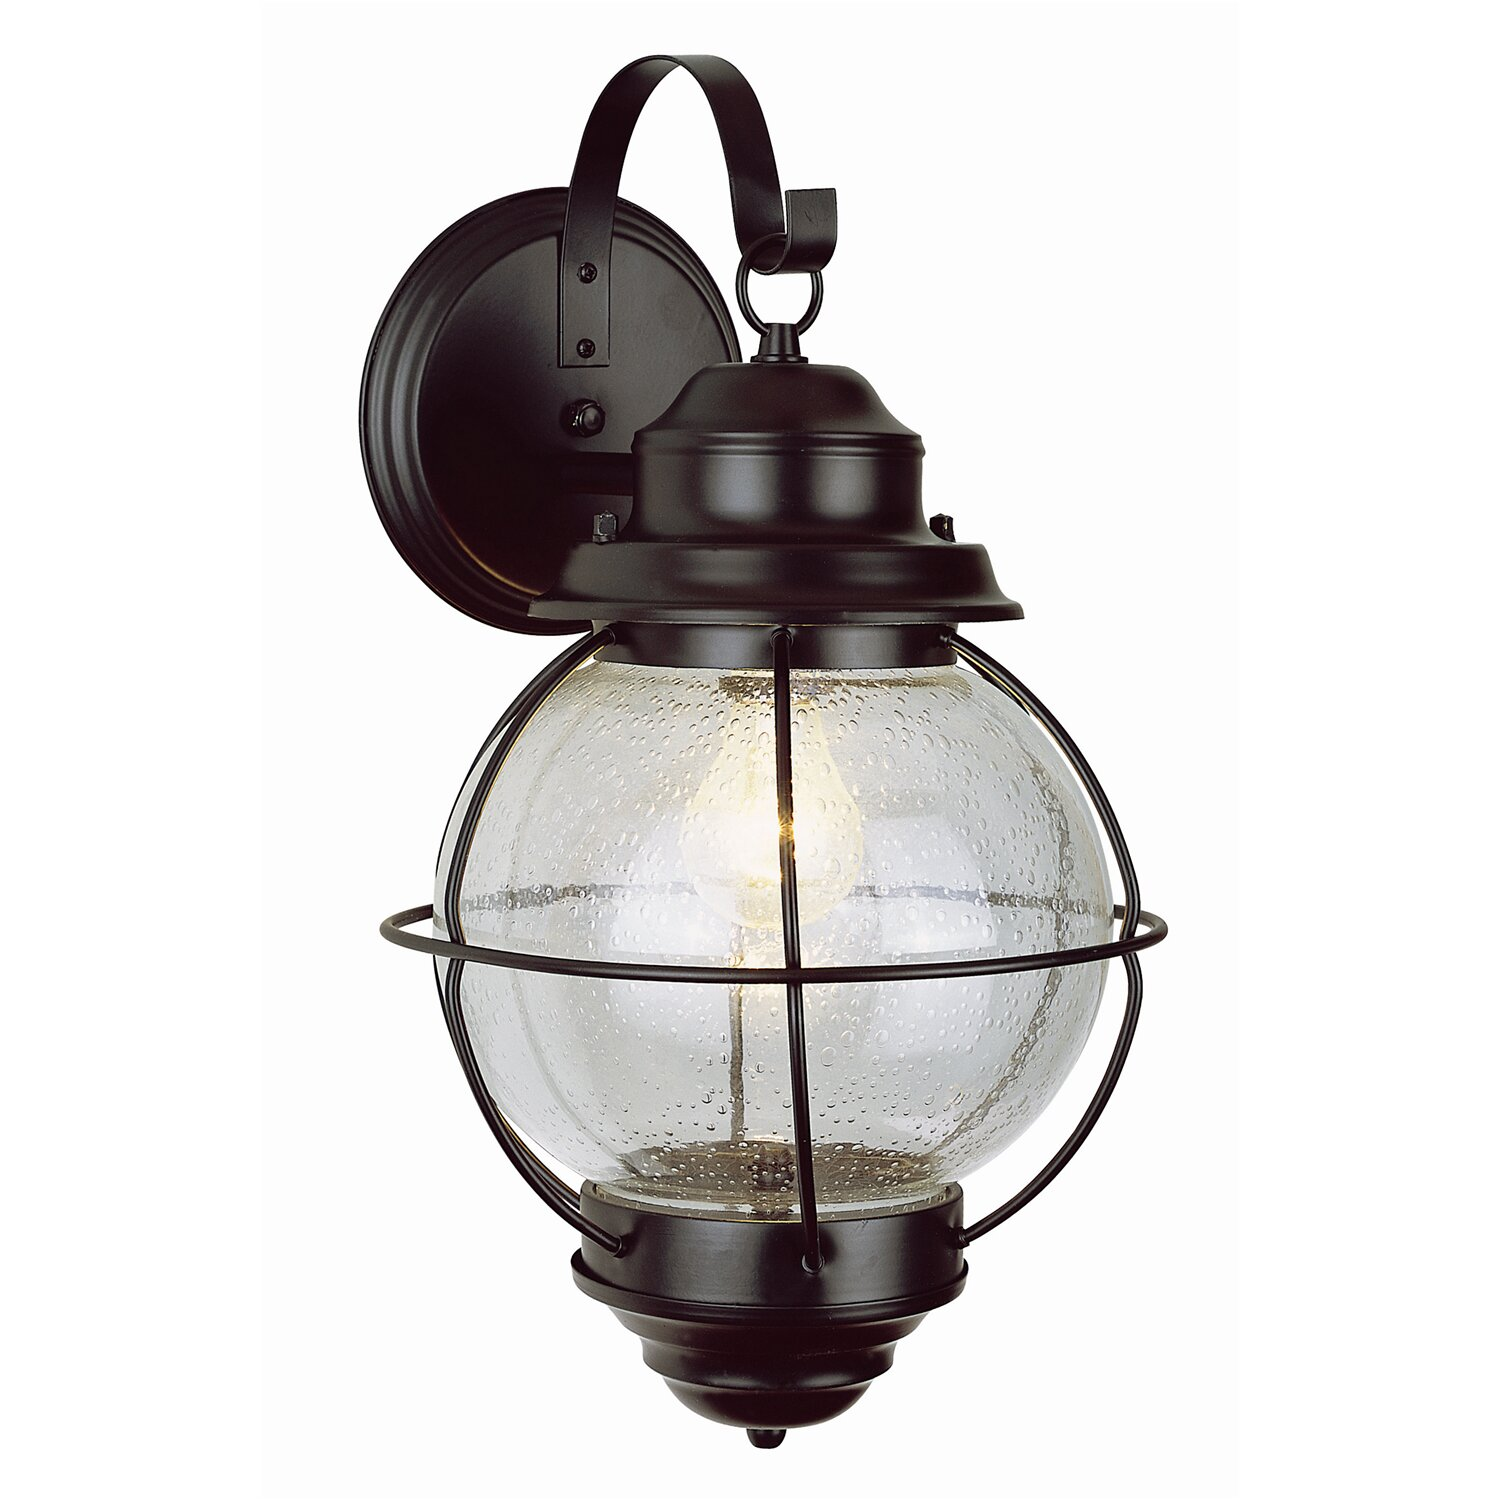 Lantern Wall Light Outdoor : TransGlobe Lighting 1 Light Outdoor Wall Lantern & Reviews Wayfair